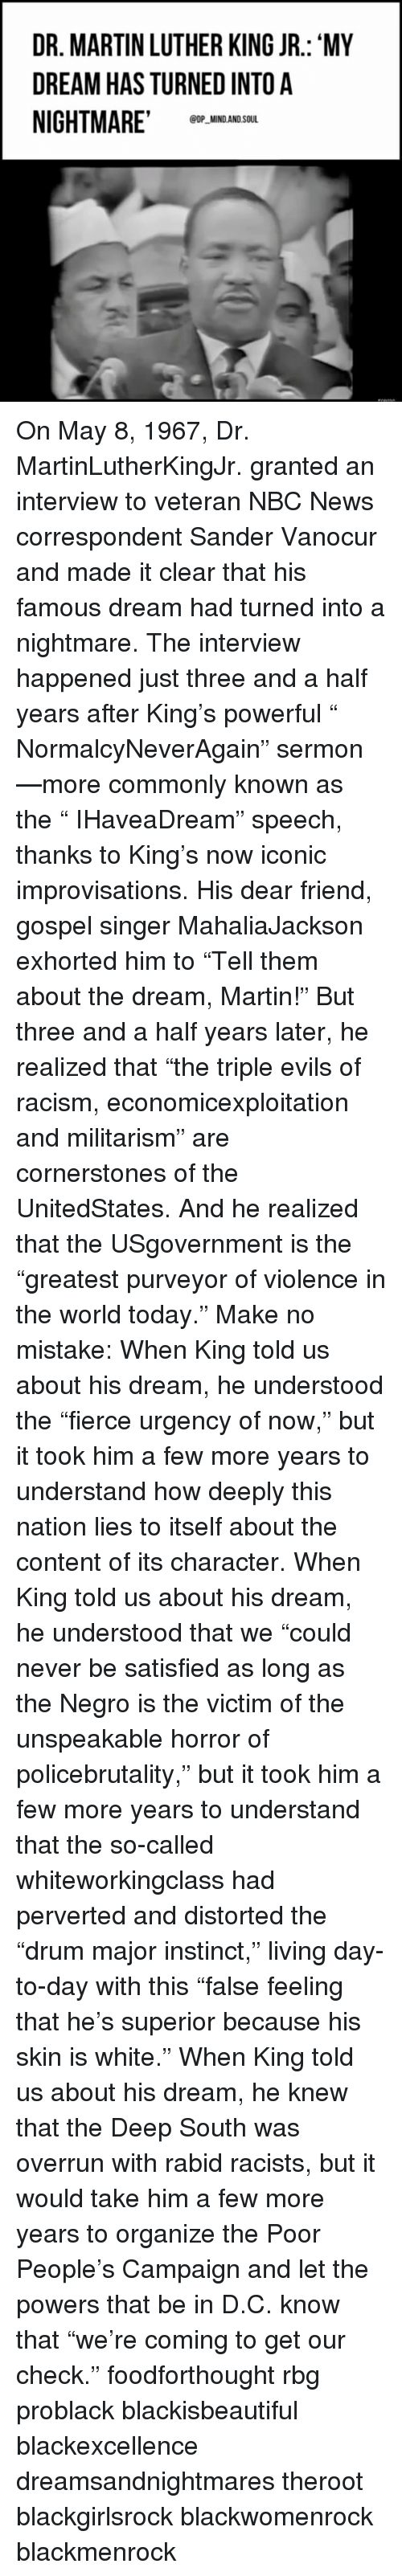 Martin Luther King Jr., Memes, and Racism: DR. MARTIN LUTHER KING